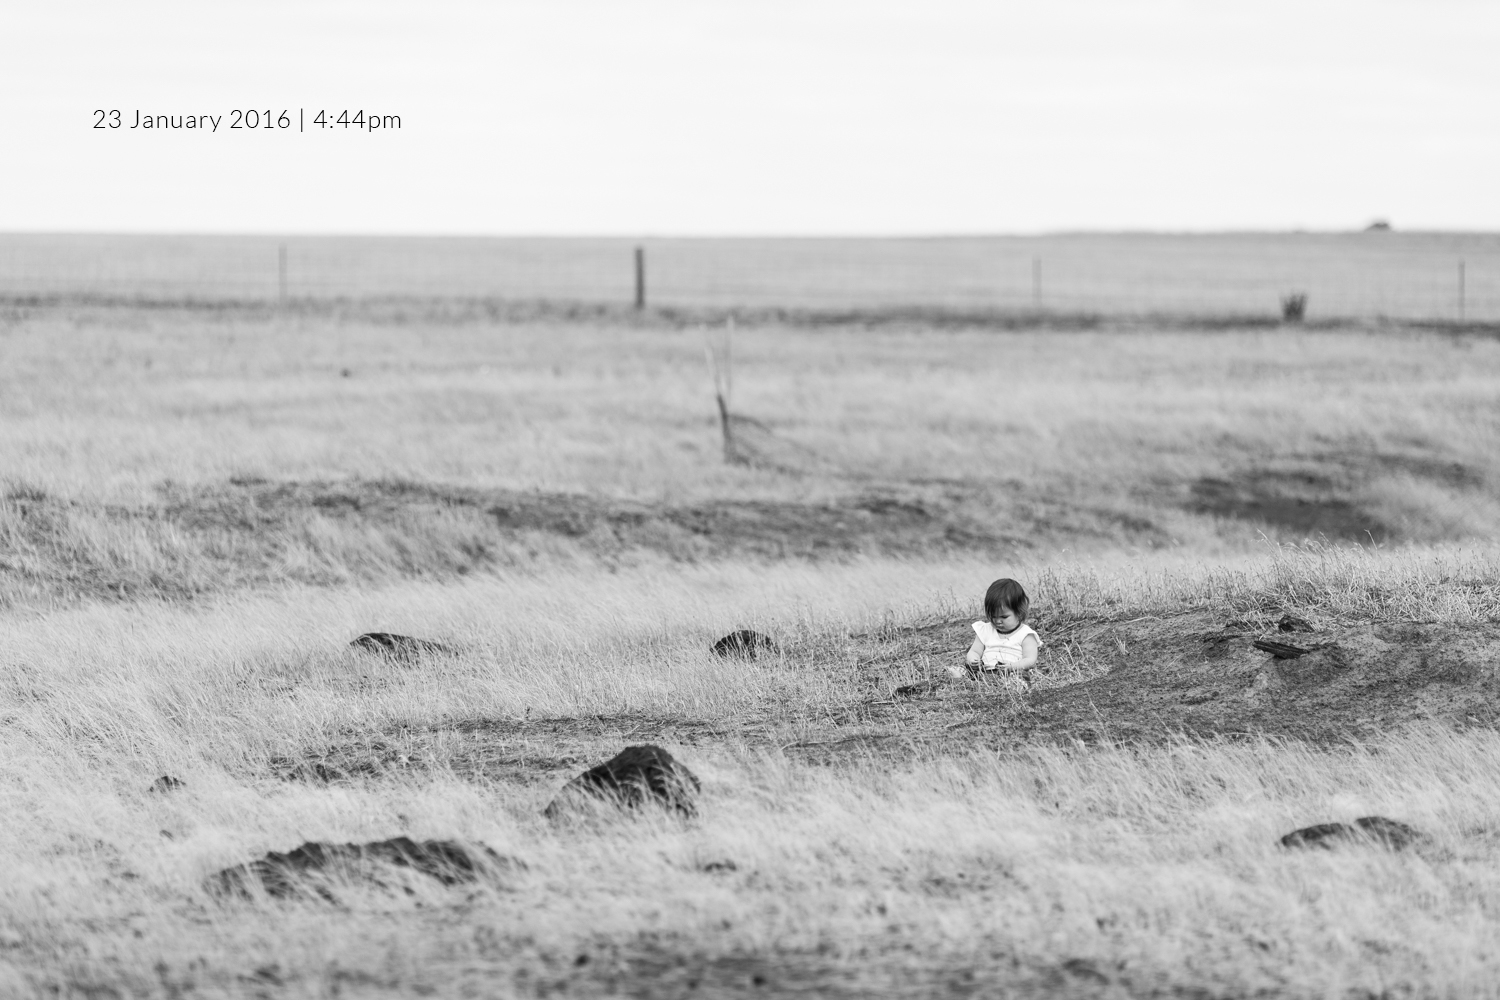 baby-in-field-baby-photography-photo-a-day-project-day-23.jpg